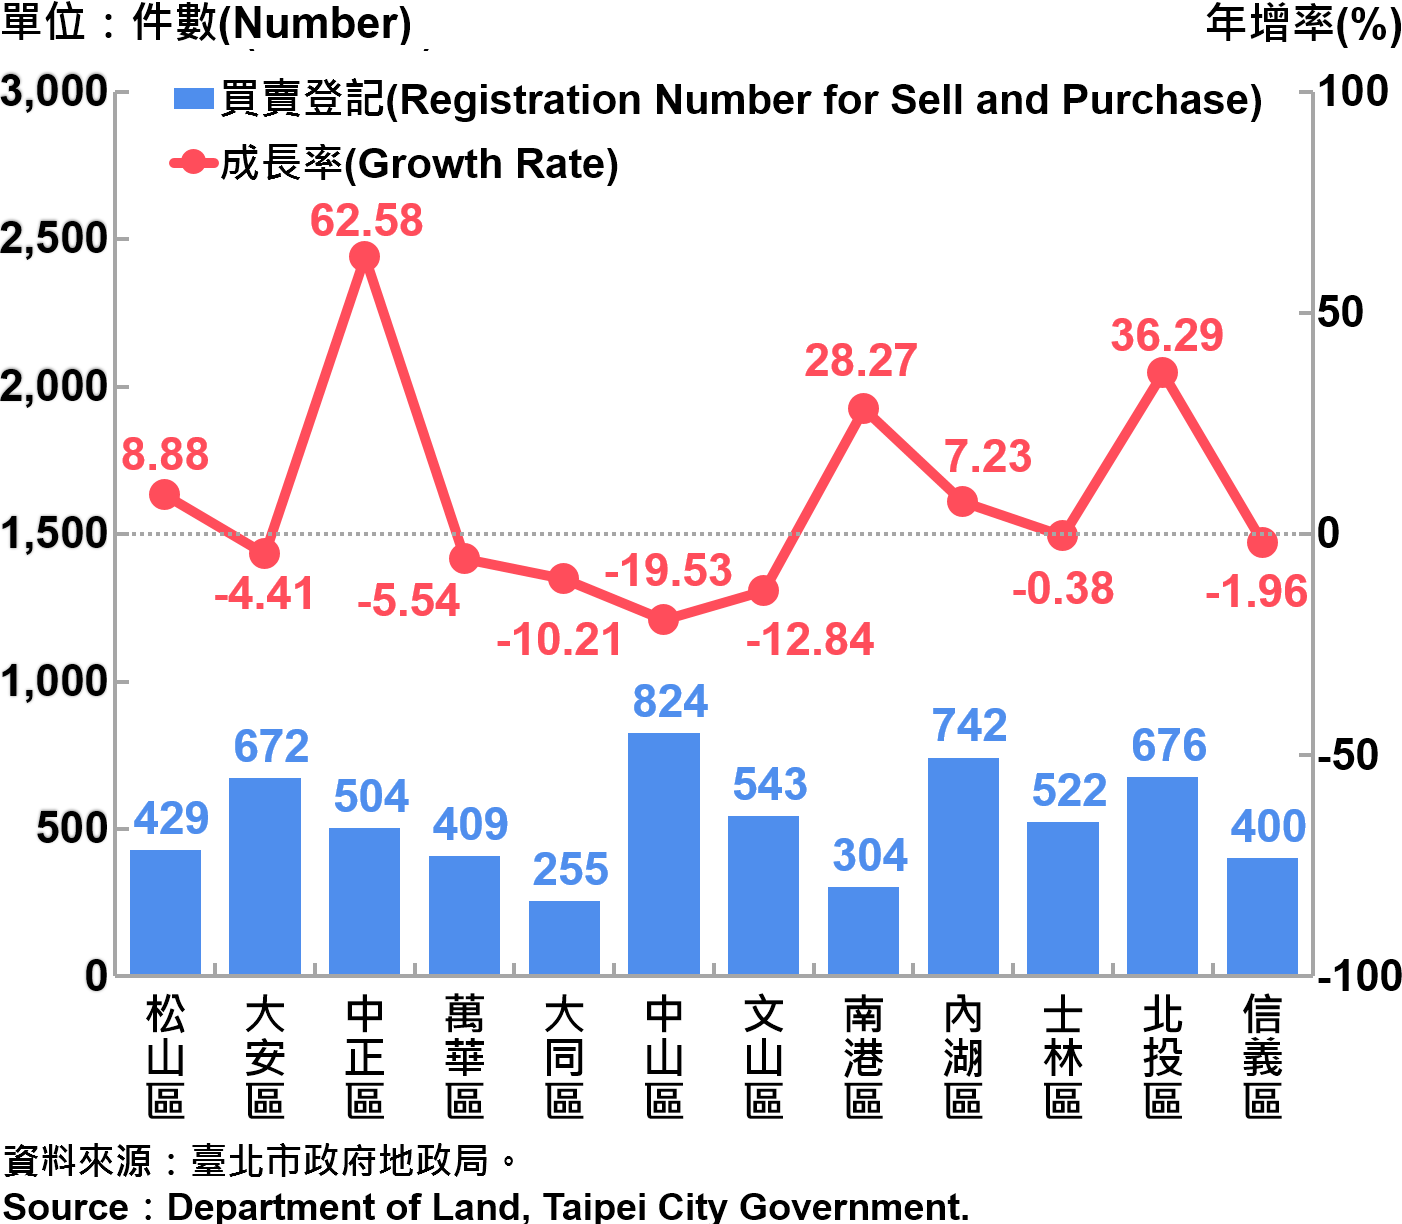 臺北市不動產買賣登記統計—依行政區分—2018Q3 Statistics for Trade in Real Estate Registration by Distinct—2018Q3